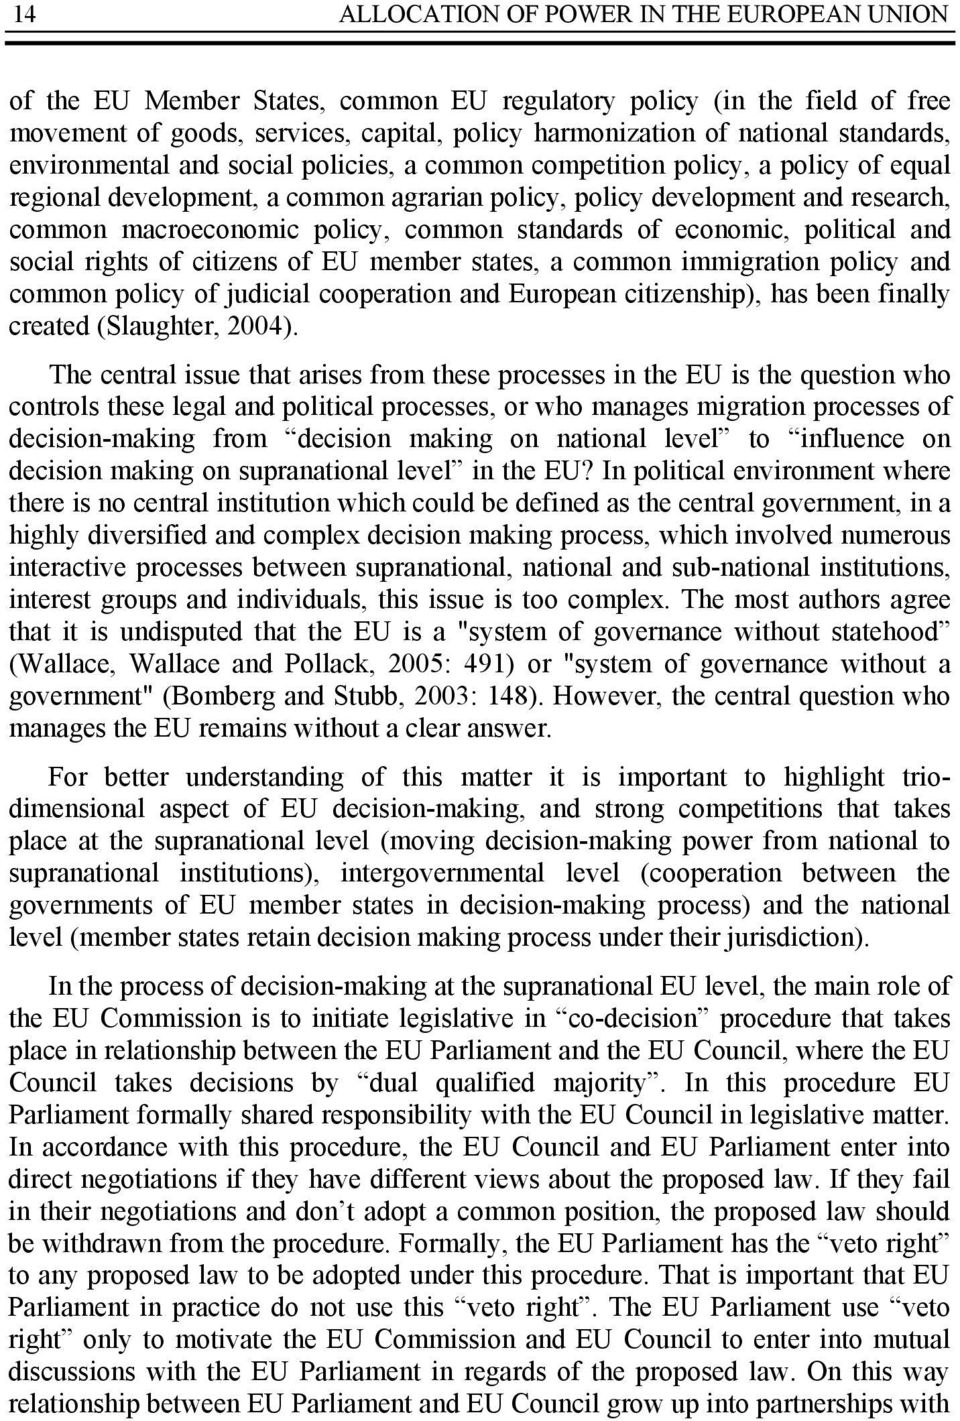 policy, common standards of economic, political and social rights of citizens of EU member states, a common immigration policy and common policy of judicial cooperation and European citizenship), has